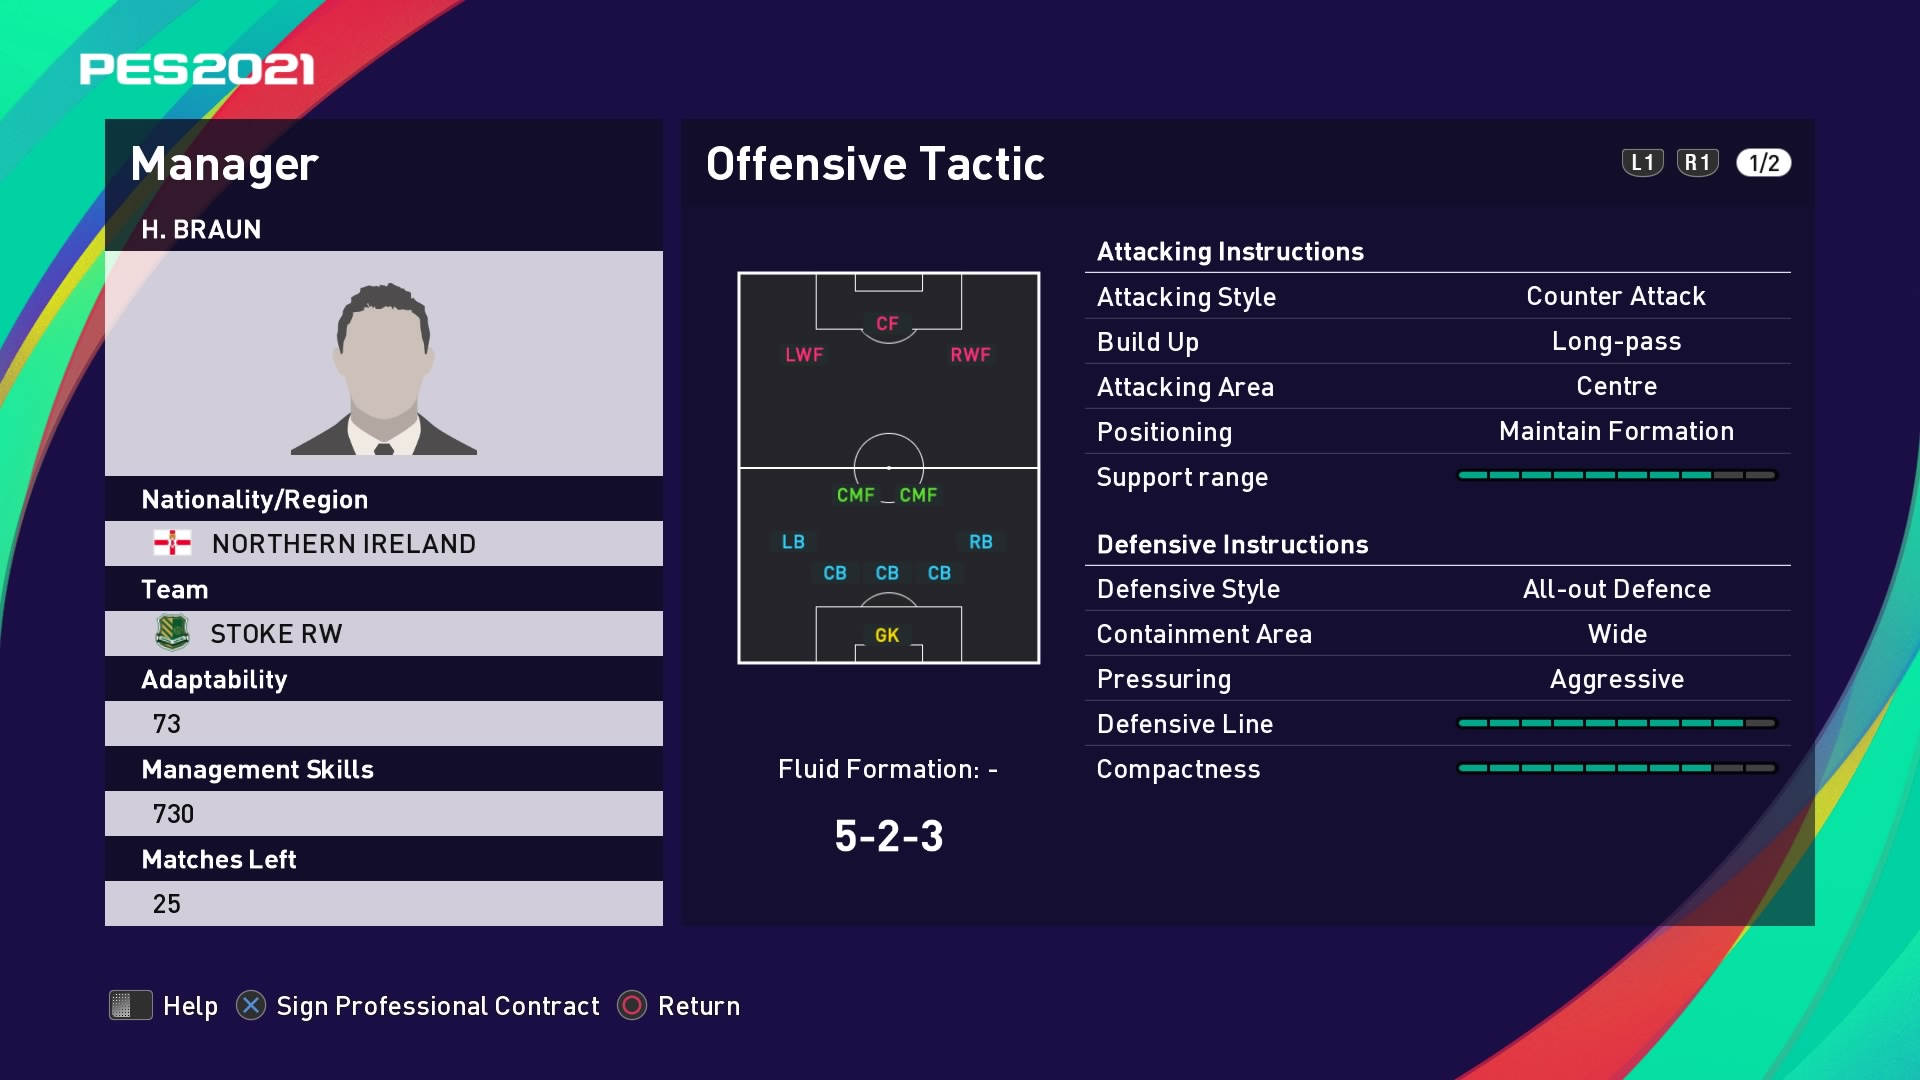 H. Braun (Michael O'Neill) Offensive Tactic in PES 2021 myClub